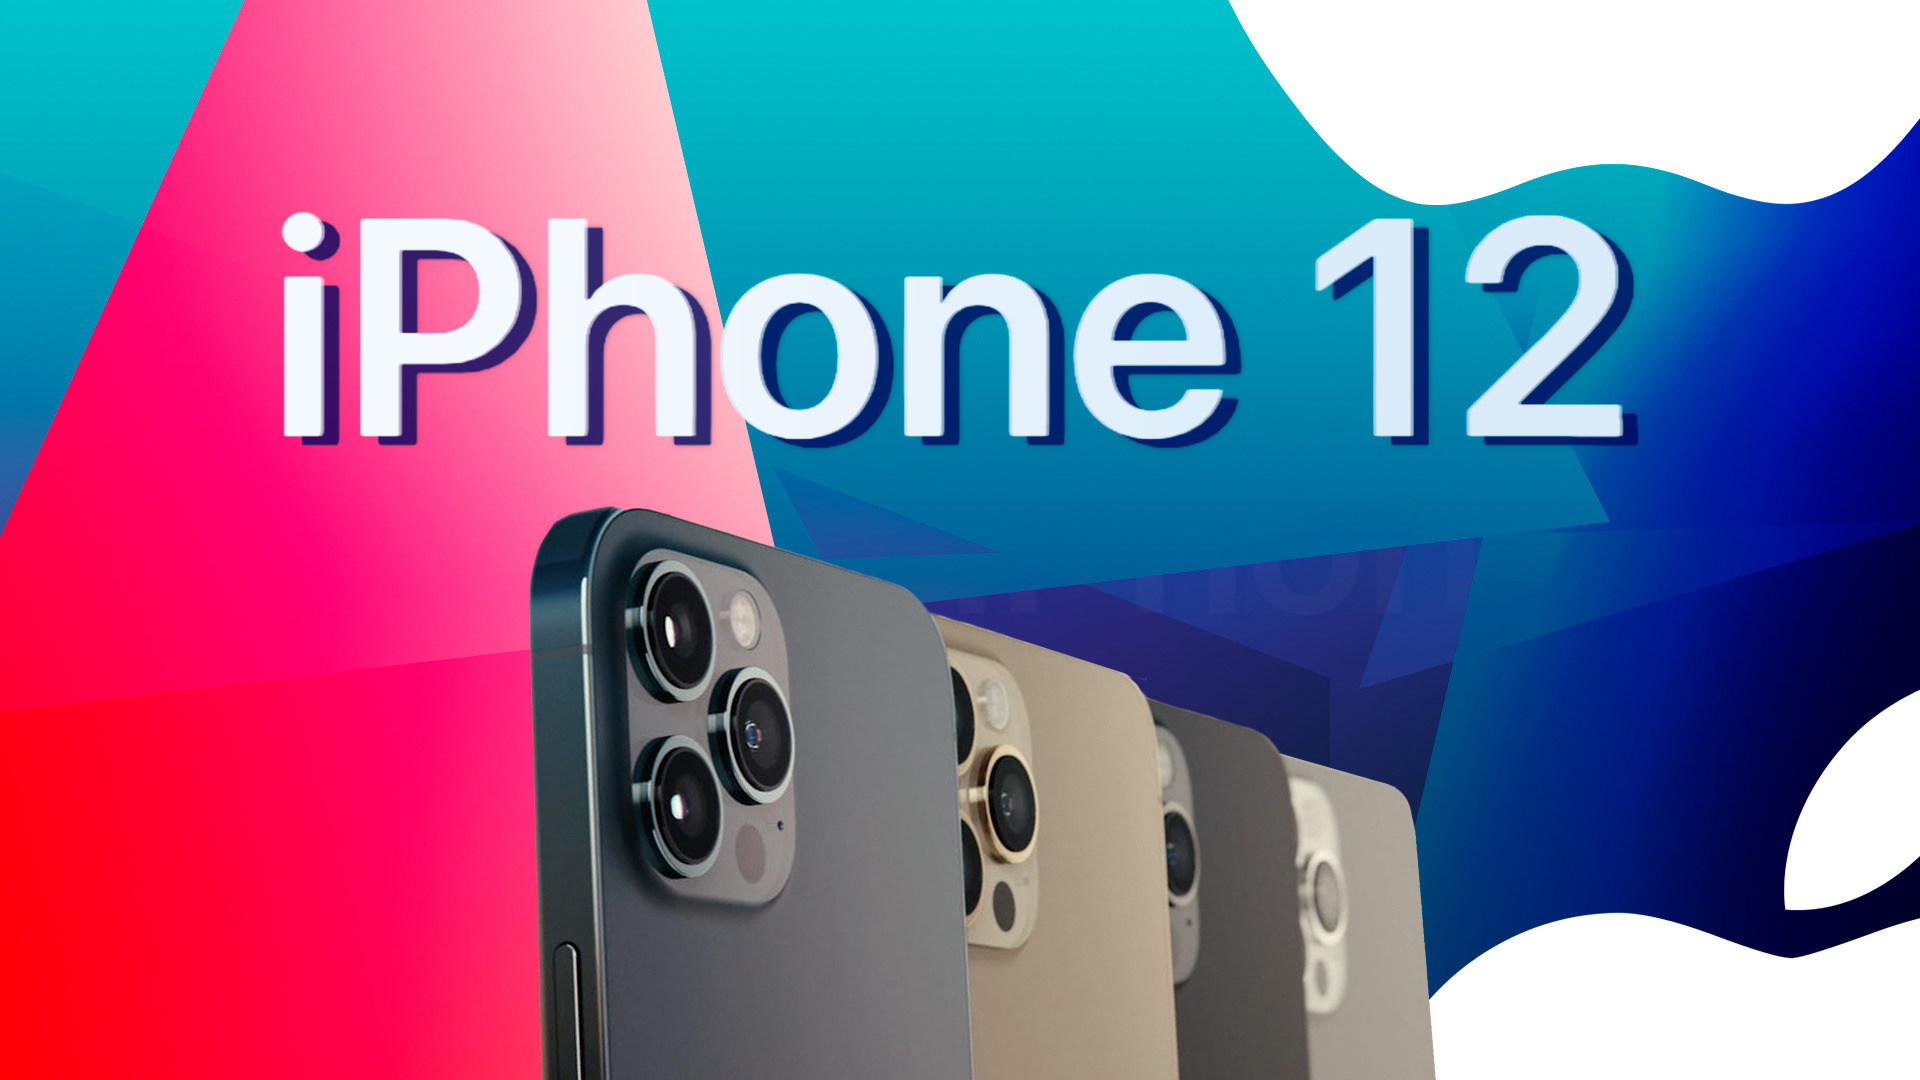 Apple, Iphone, Apple iPhone, iPhone 12, iPhone 12 Pro, Apple iPhone 12, iPhone 12 Pro Max, Apple iPhone 12 Pro, Apple iPhone 12 Pro Max